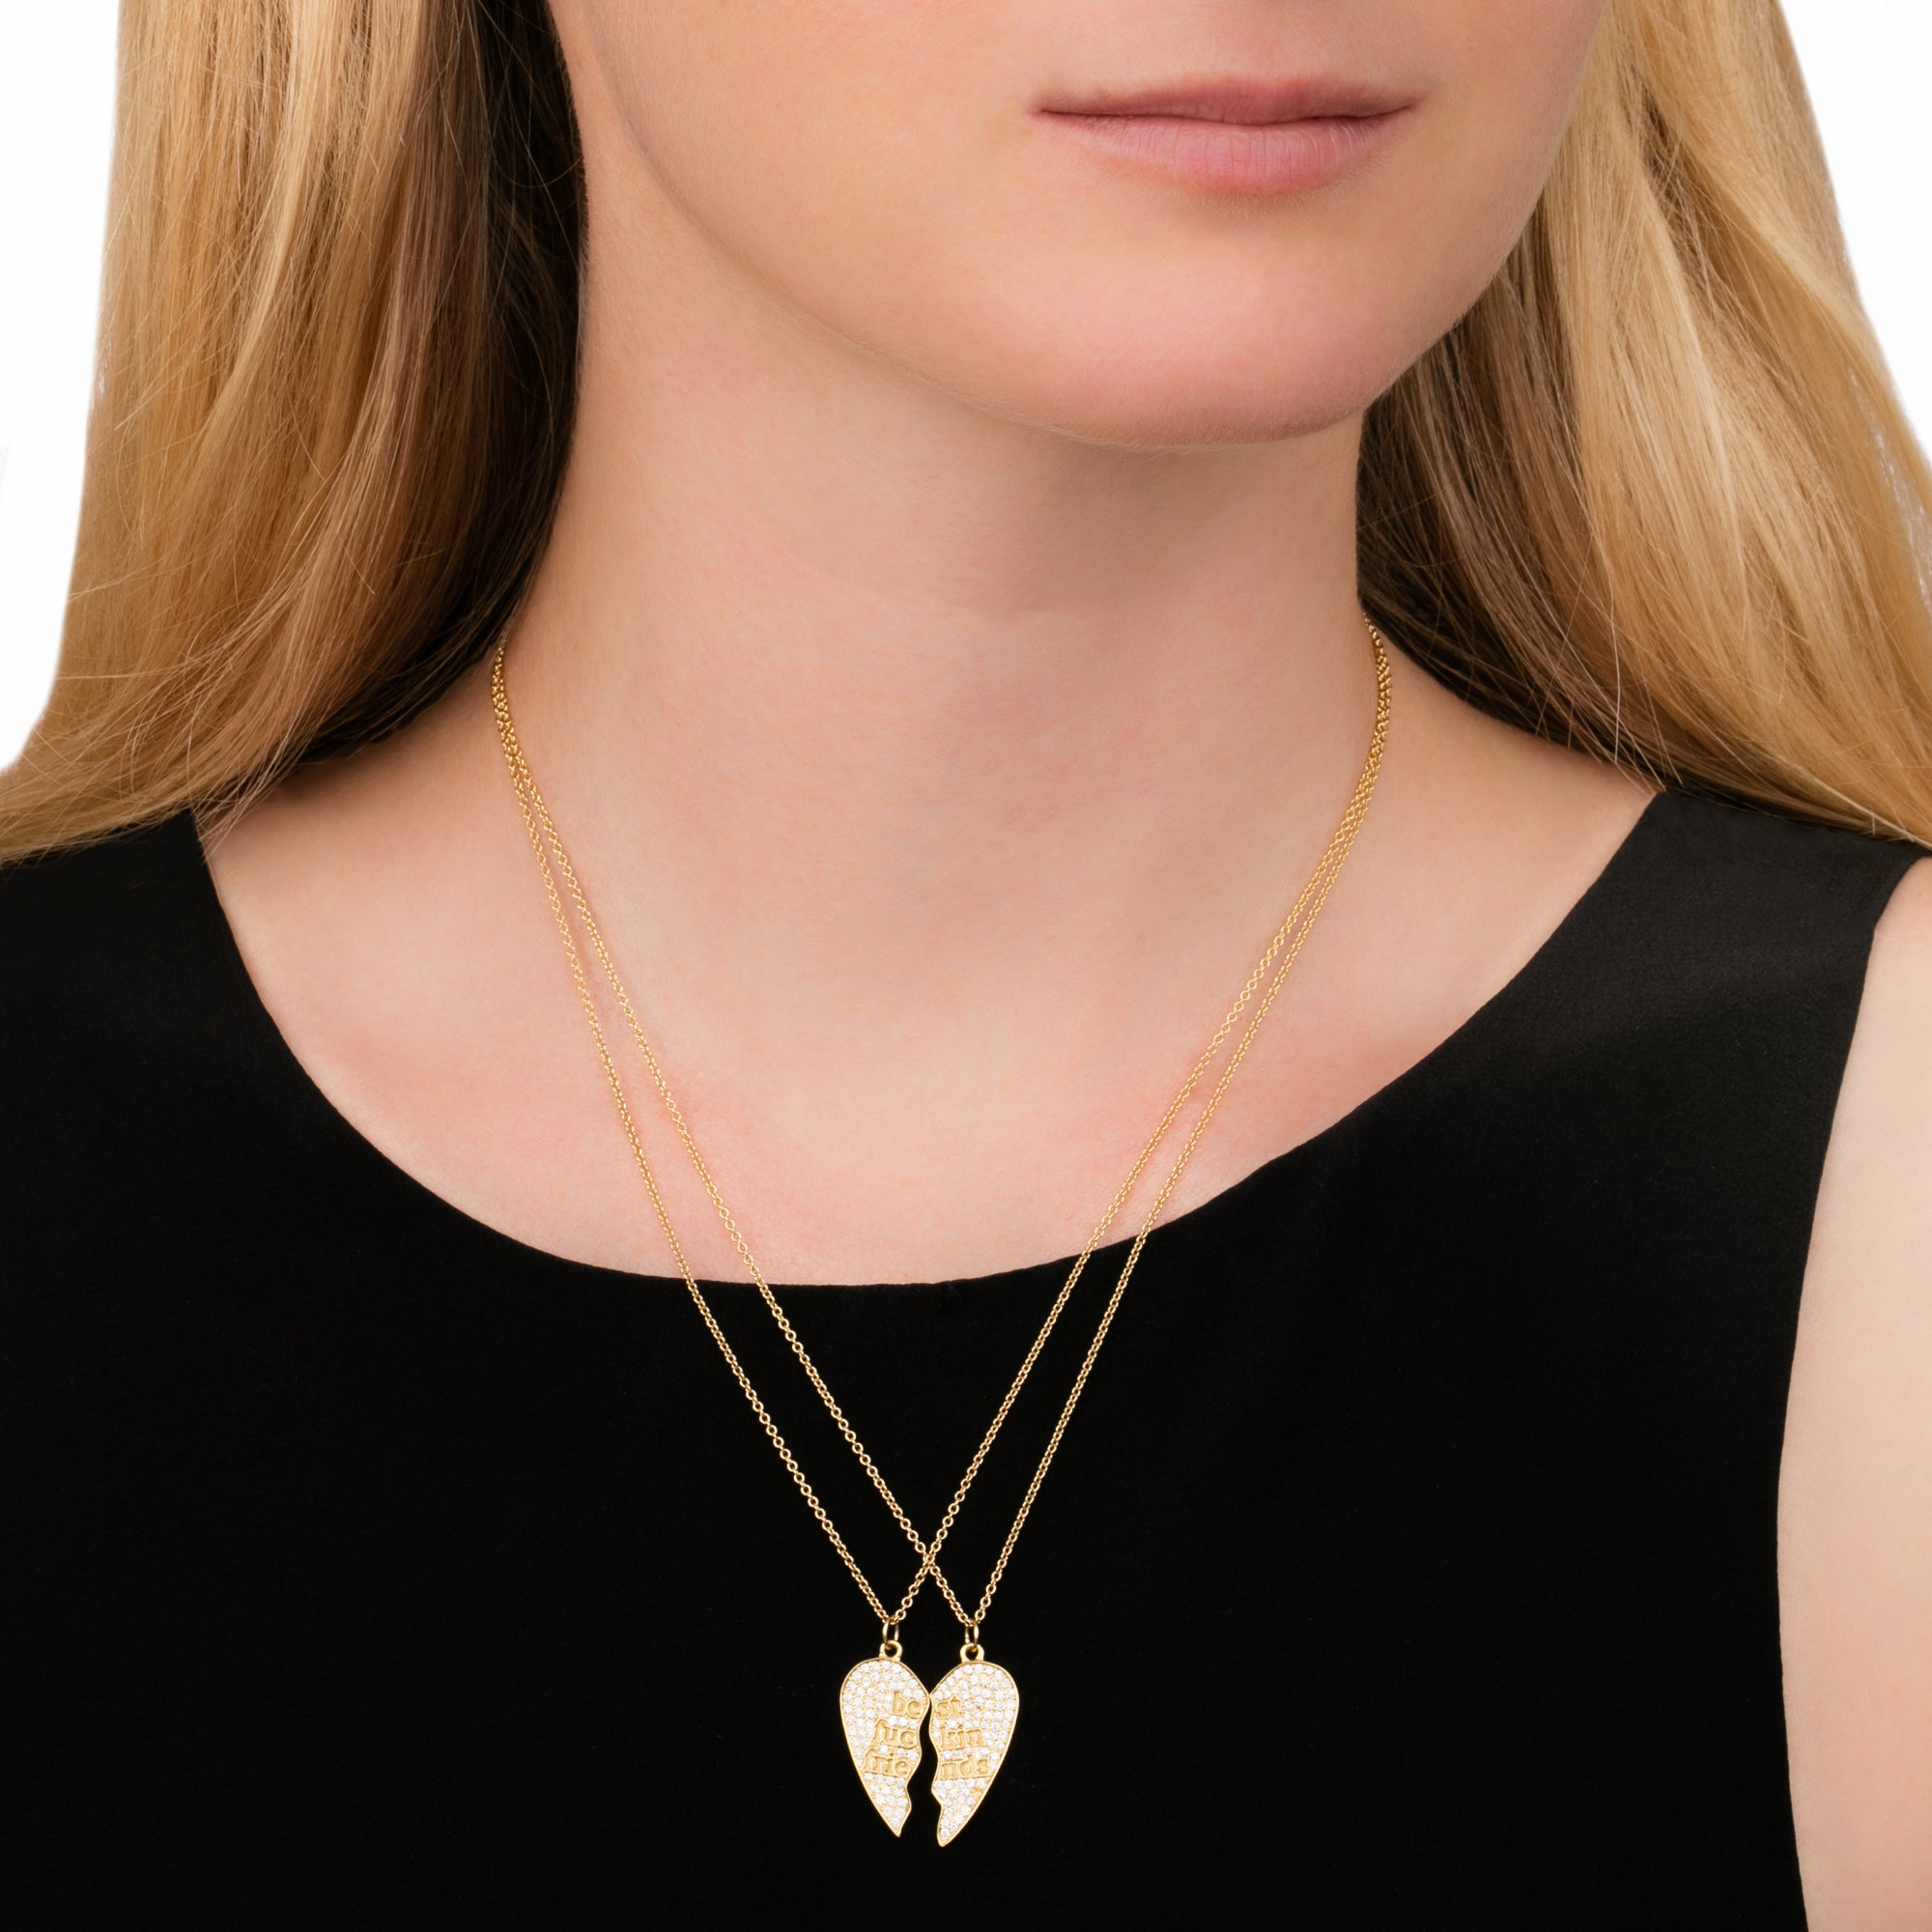 Established Jewelry BFF 2-Piece Heart Necklace - Necklaces - Broken English Jewelry